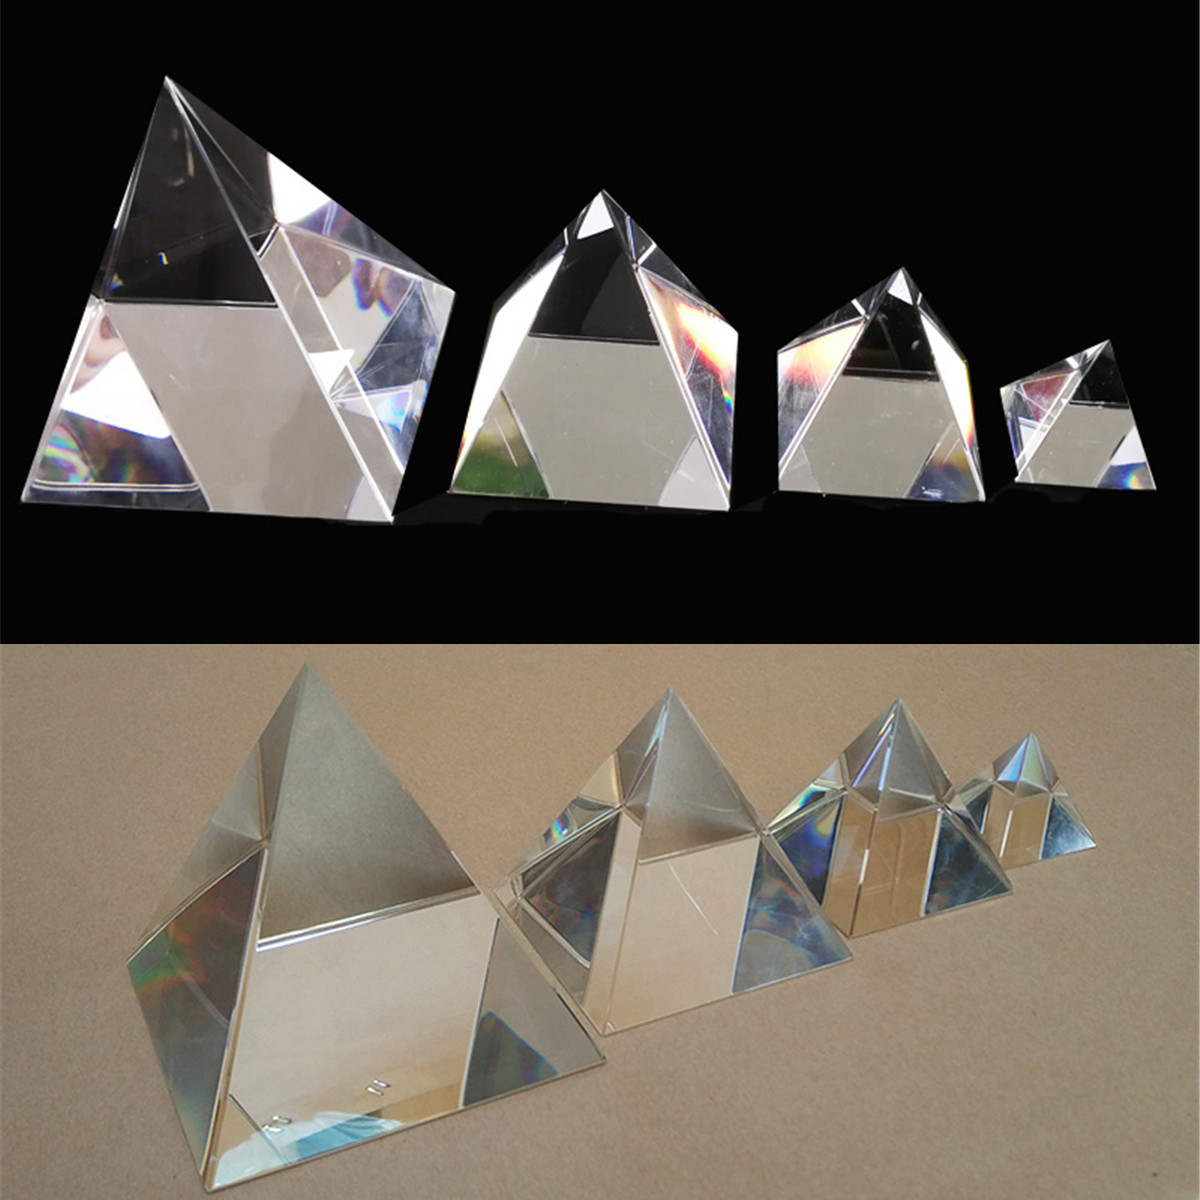 Optical Glass Prisms 100mm Pyramid Crystal Healing Prism Science Optics Triangle Teaching Light Spectrum Props MaterialOptical Glass Prisms 100mm Pyramid Crystal Healing Prism Science Optics Triangle Teaching Light Spectrum Props Material